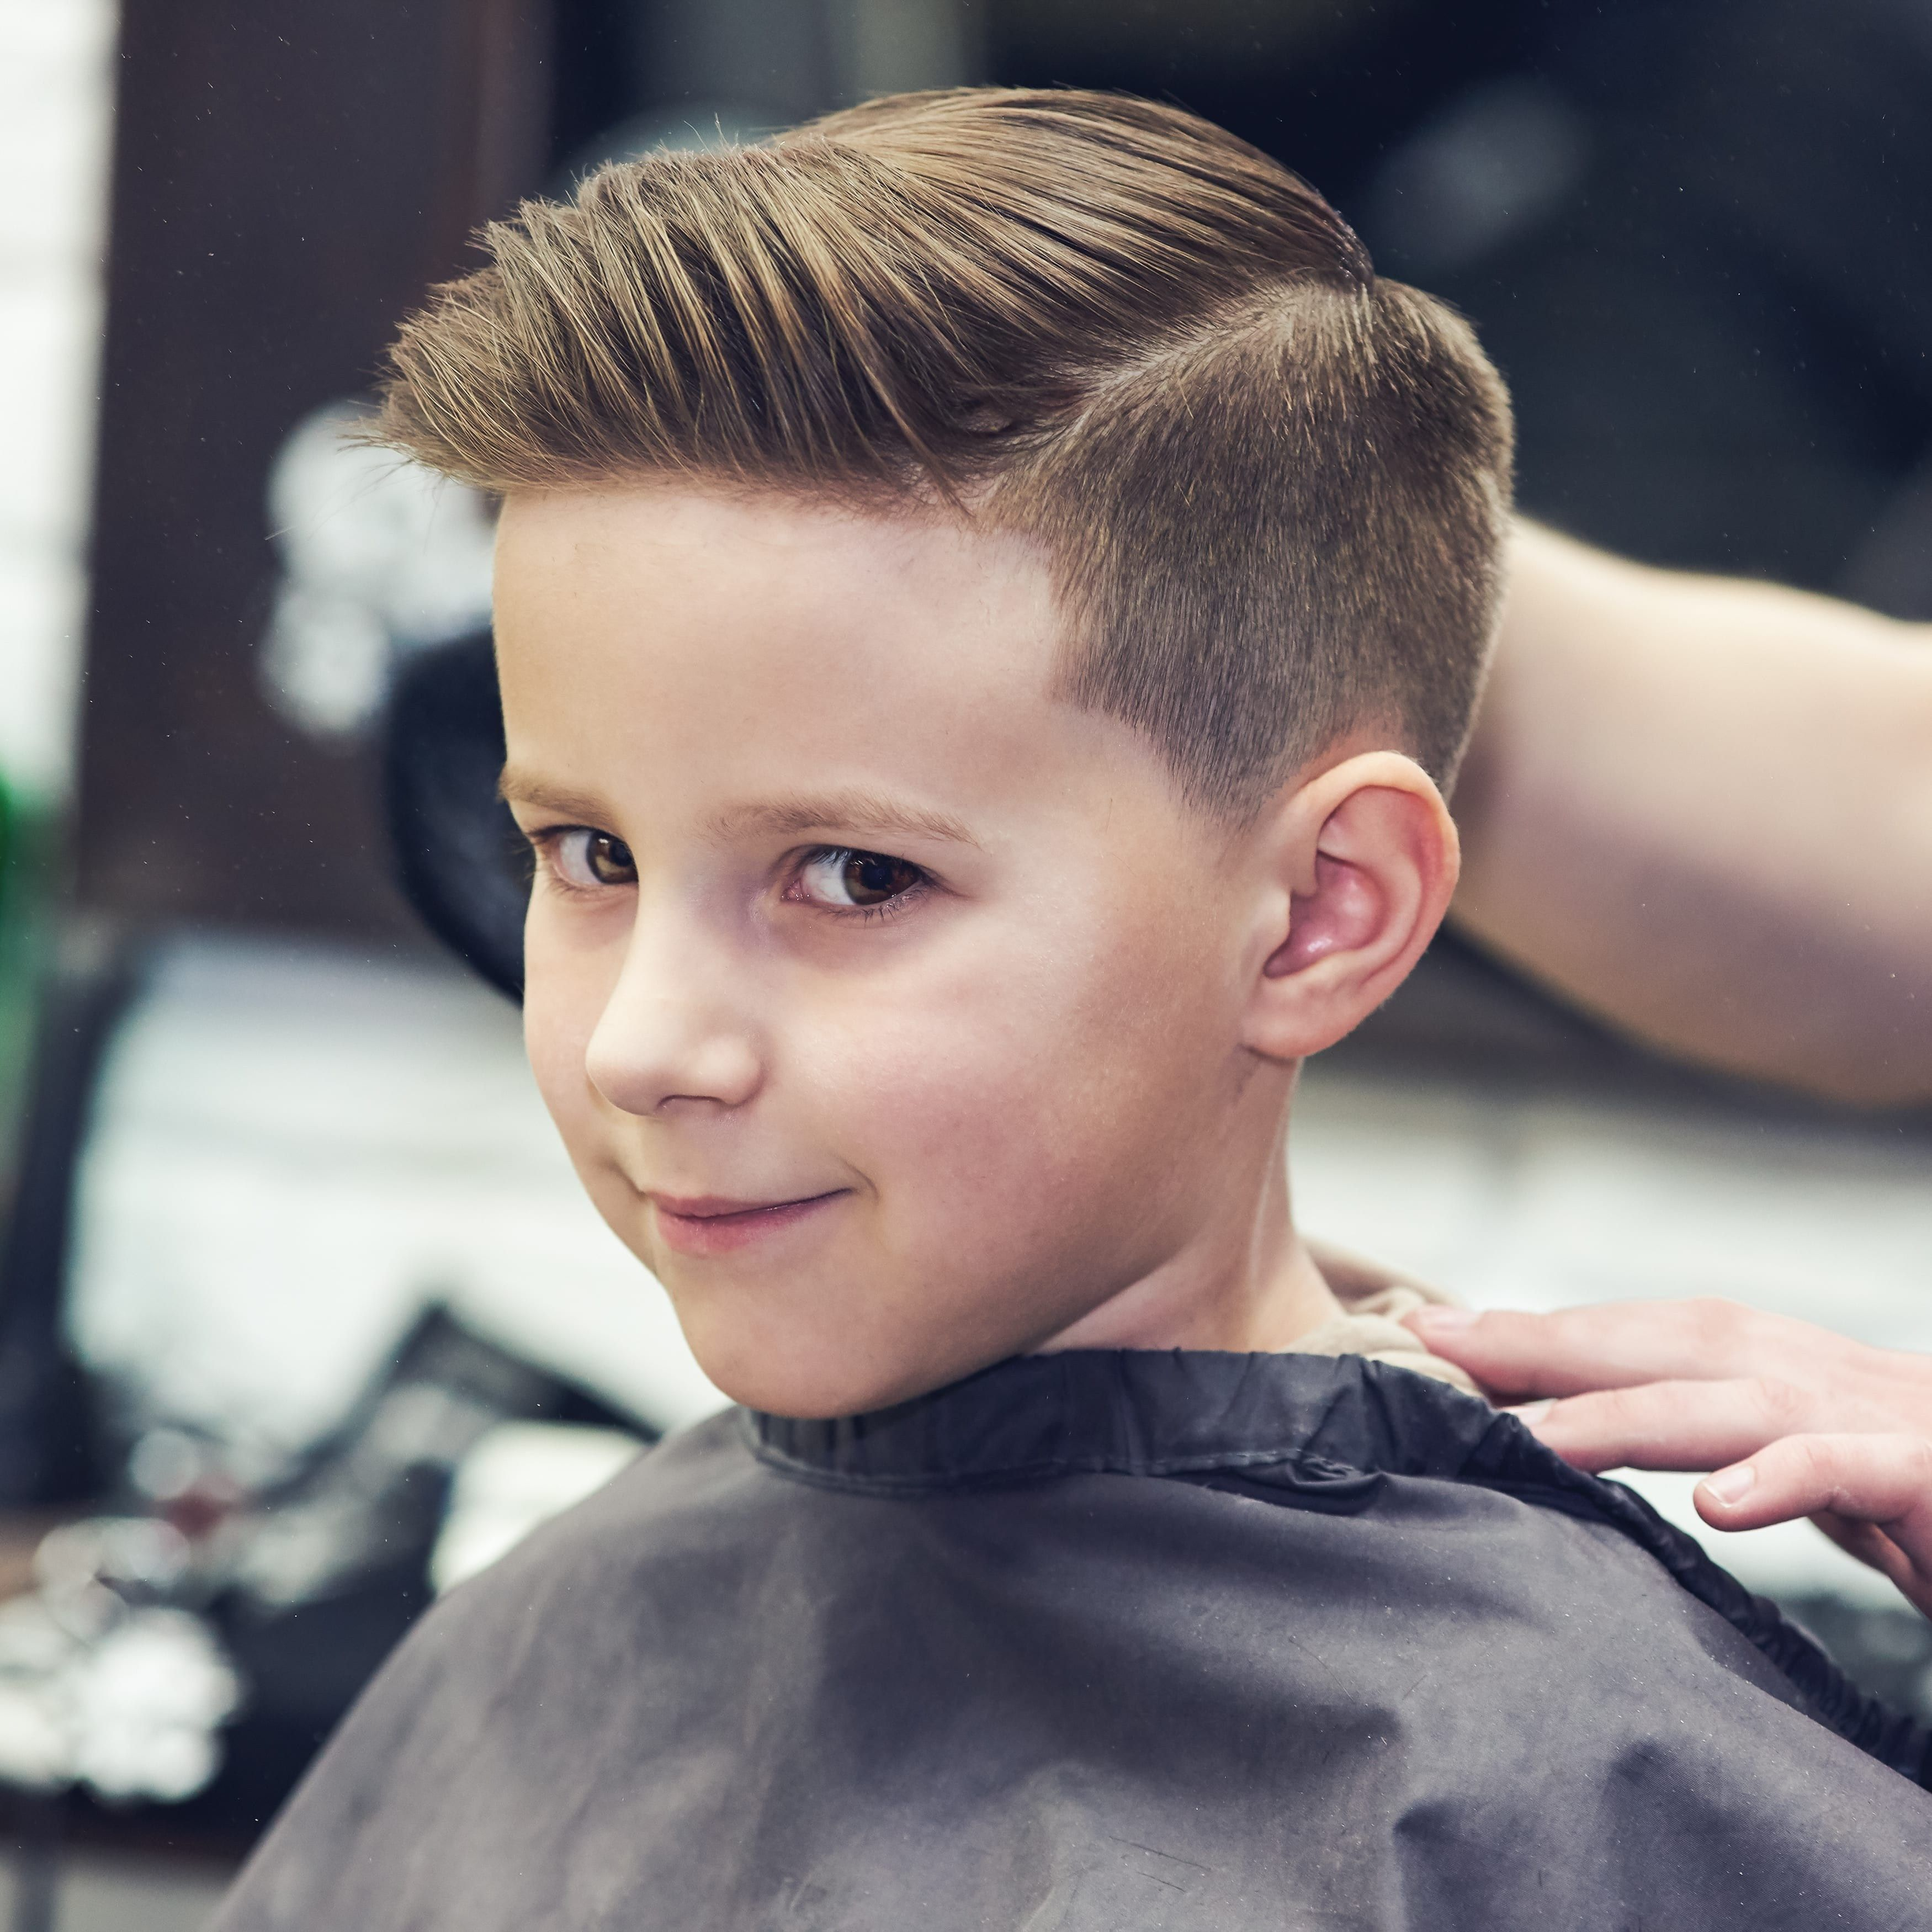 8 year old boy haircuts | hairstyleva | hair style in 2019